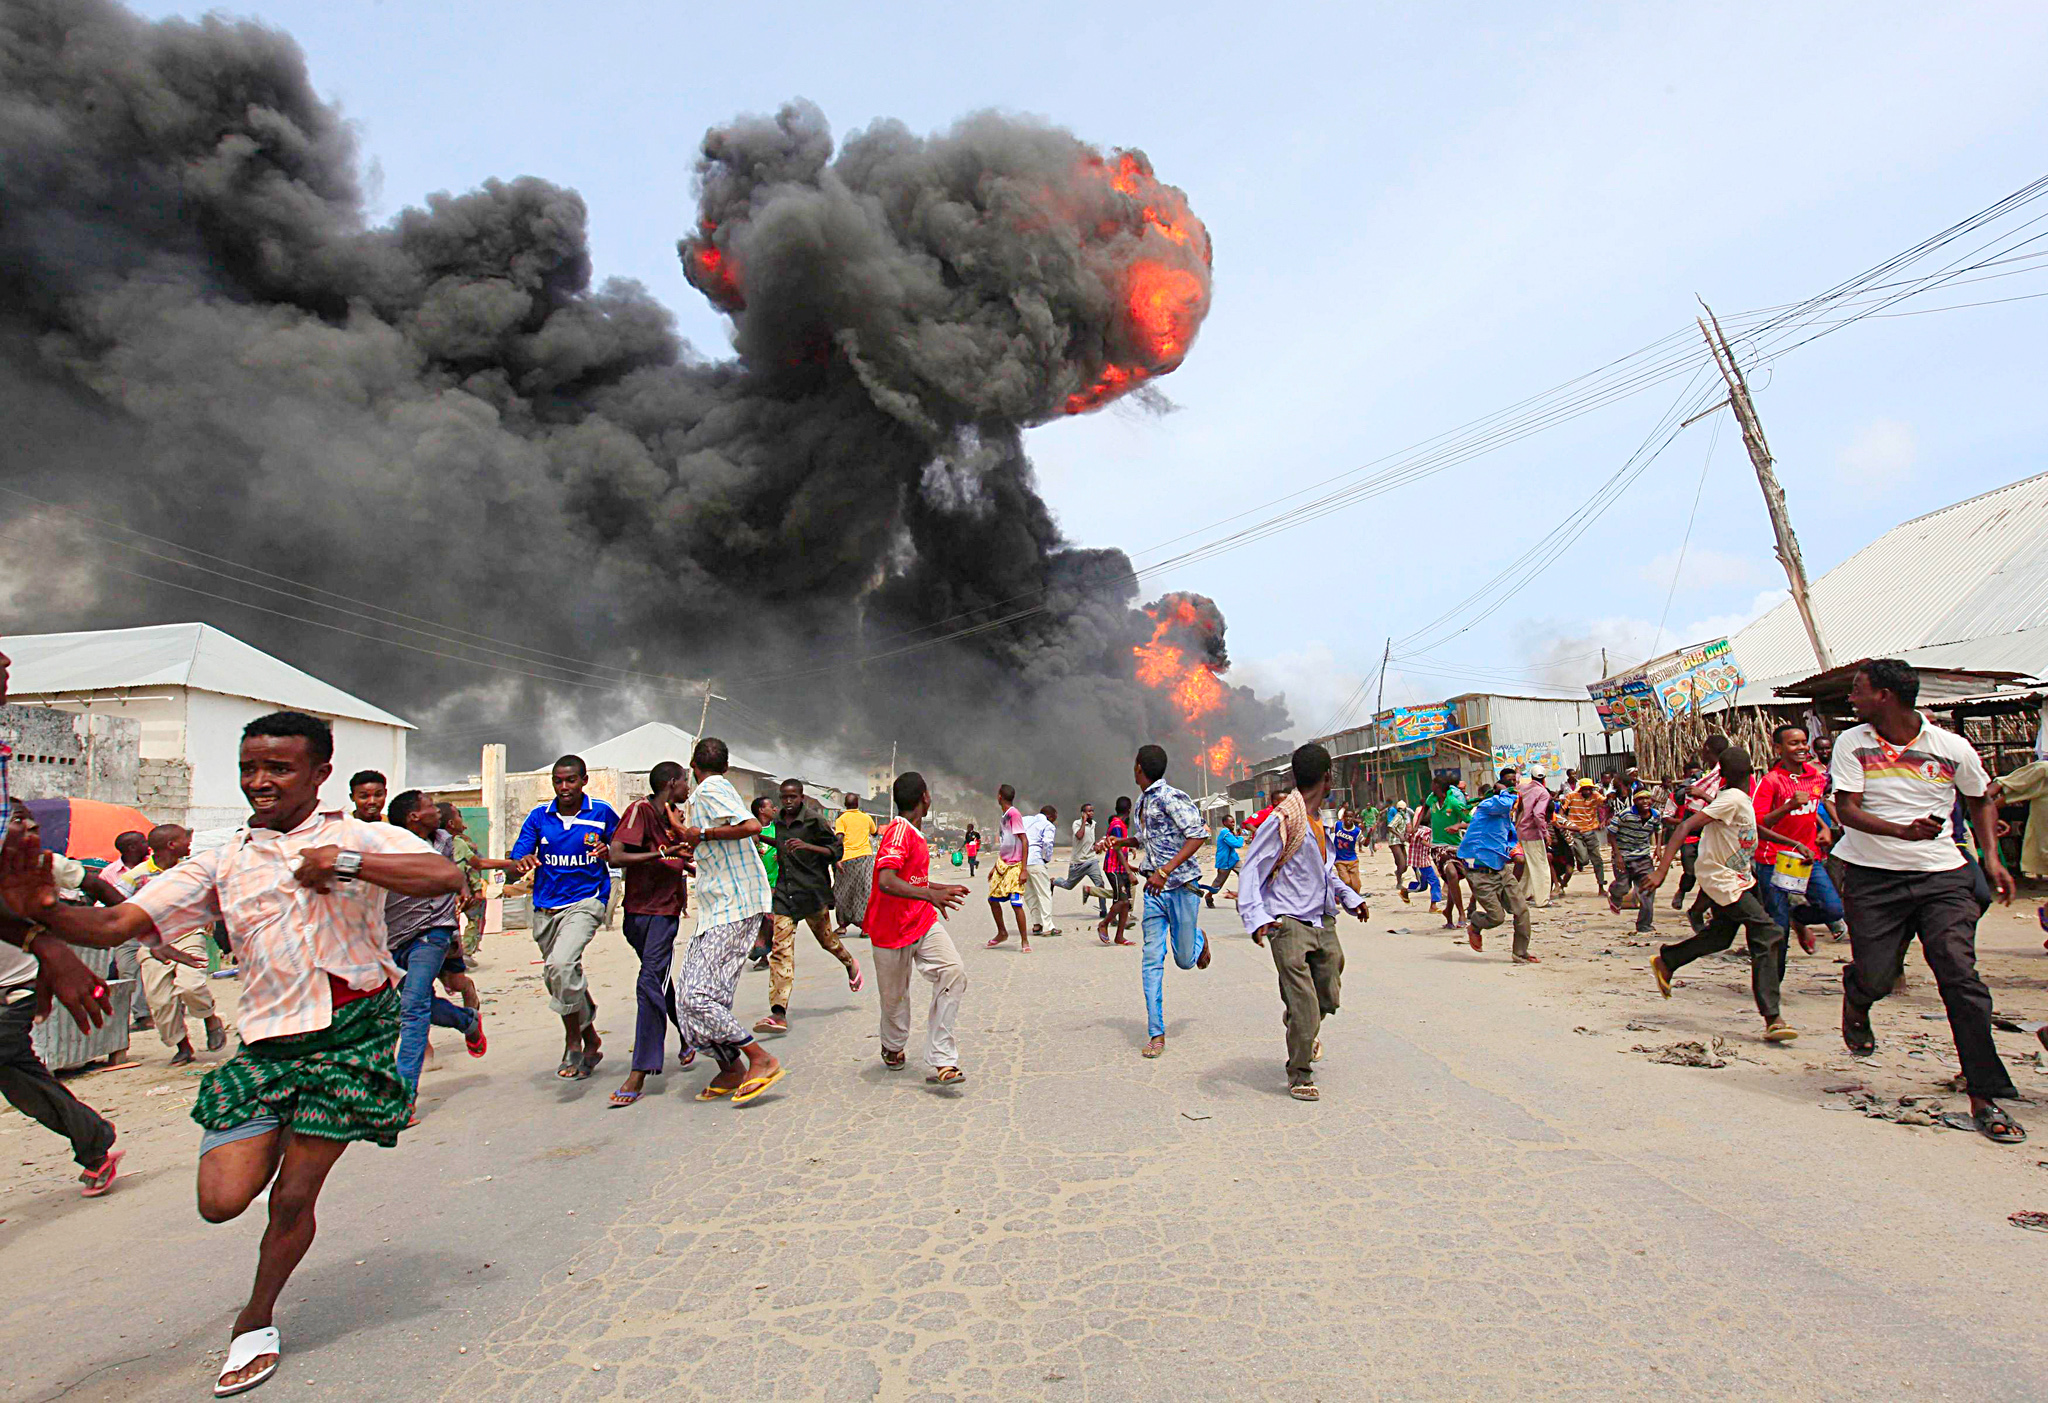 Somali police: at least 7 killed in Mogadishu bombing - Al Arabiya ...